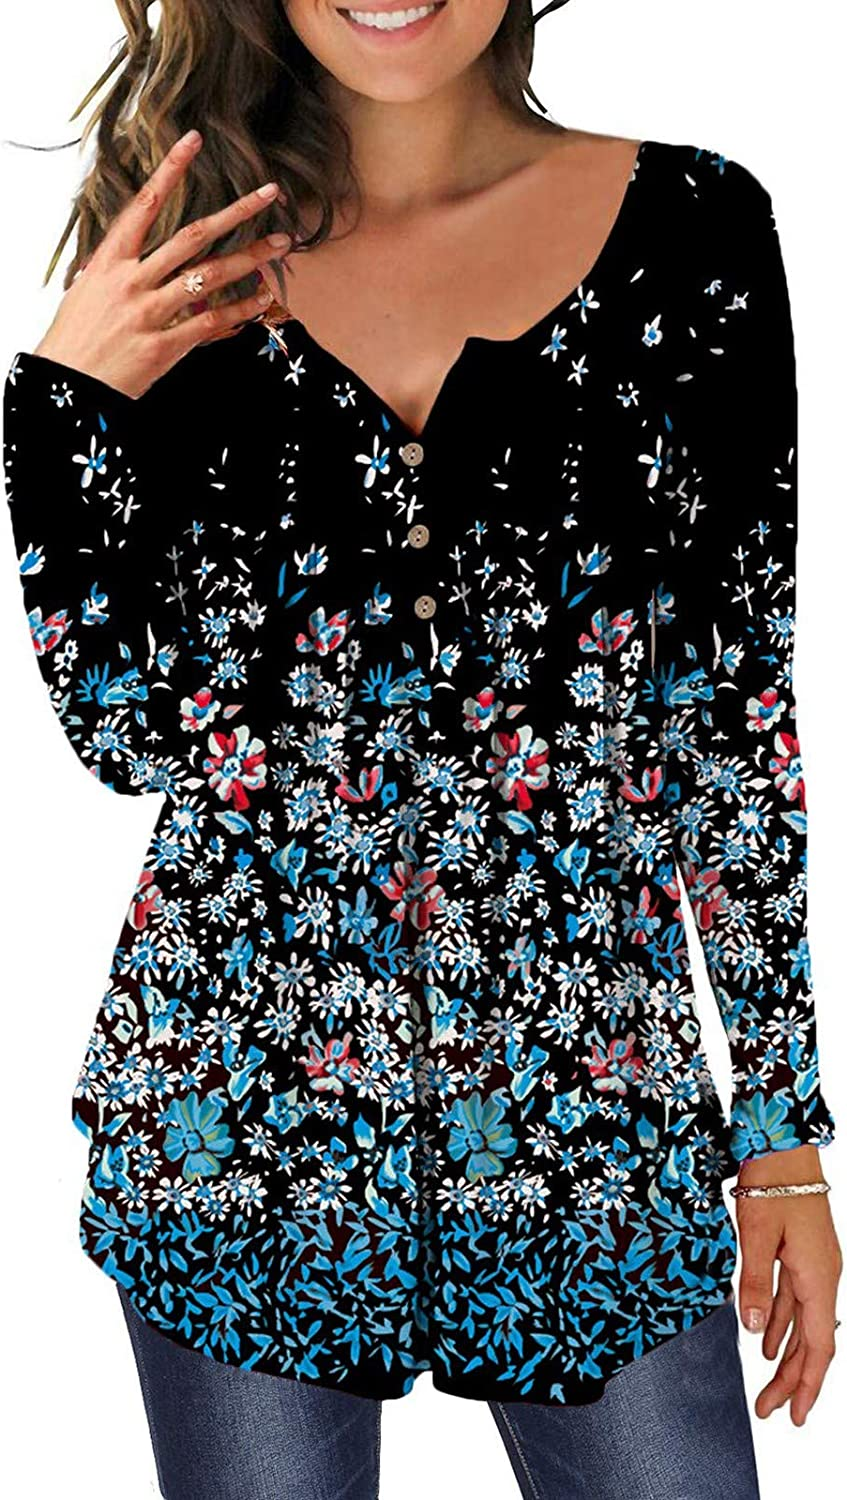 FABIURT Women Long Sleeve Tops, Womens Comfy Floral Printed V Neck Long Sleeve Tee Shirts Casual Flowy Pullover Blouses